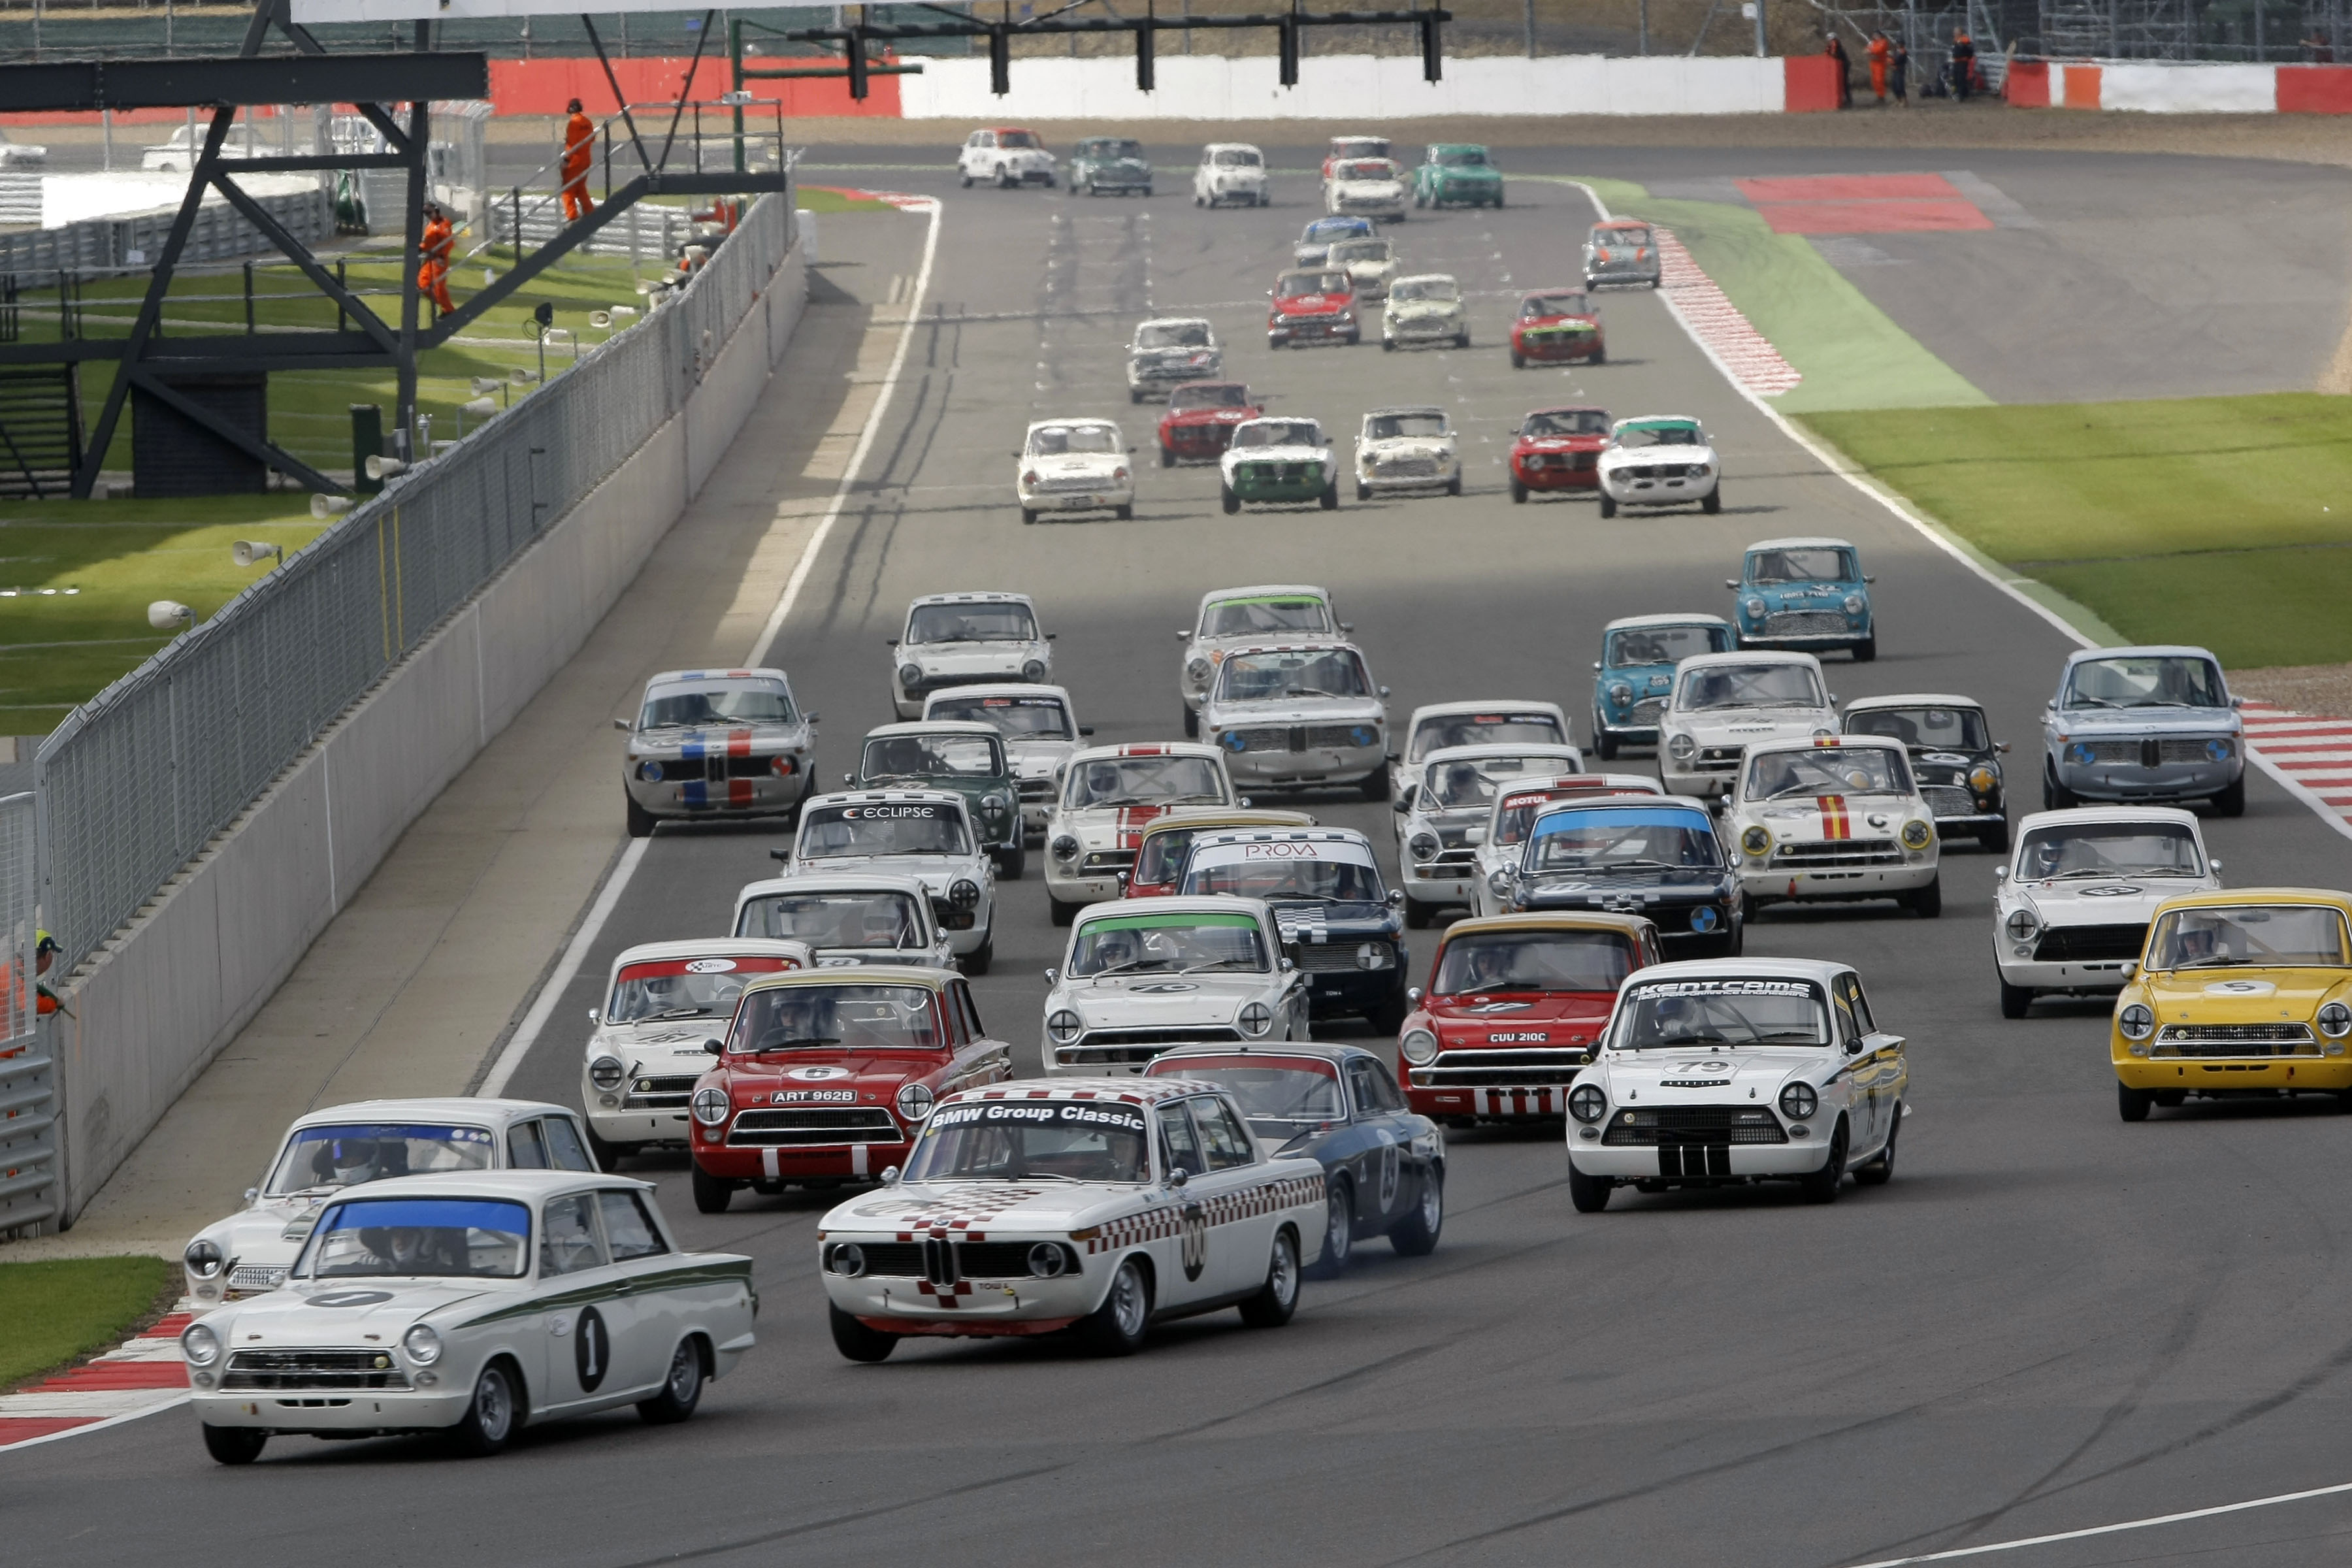 The Biggest Touring Car Revival Yet At The Silverstone